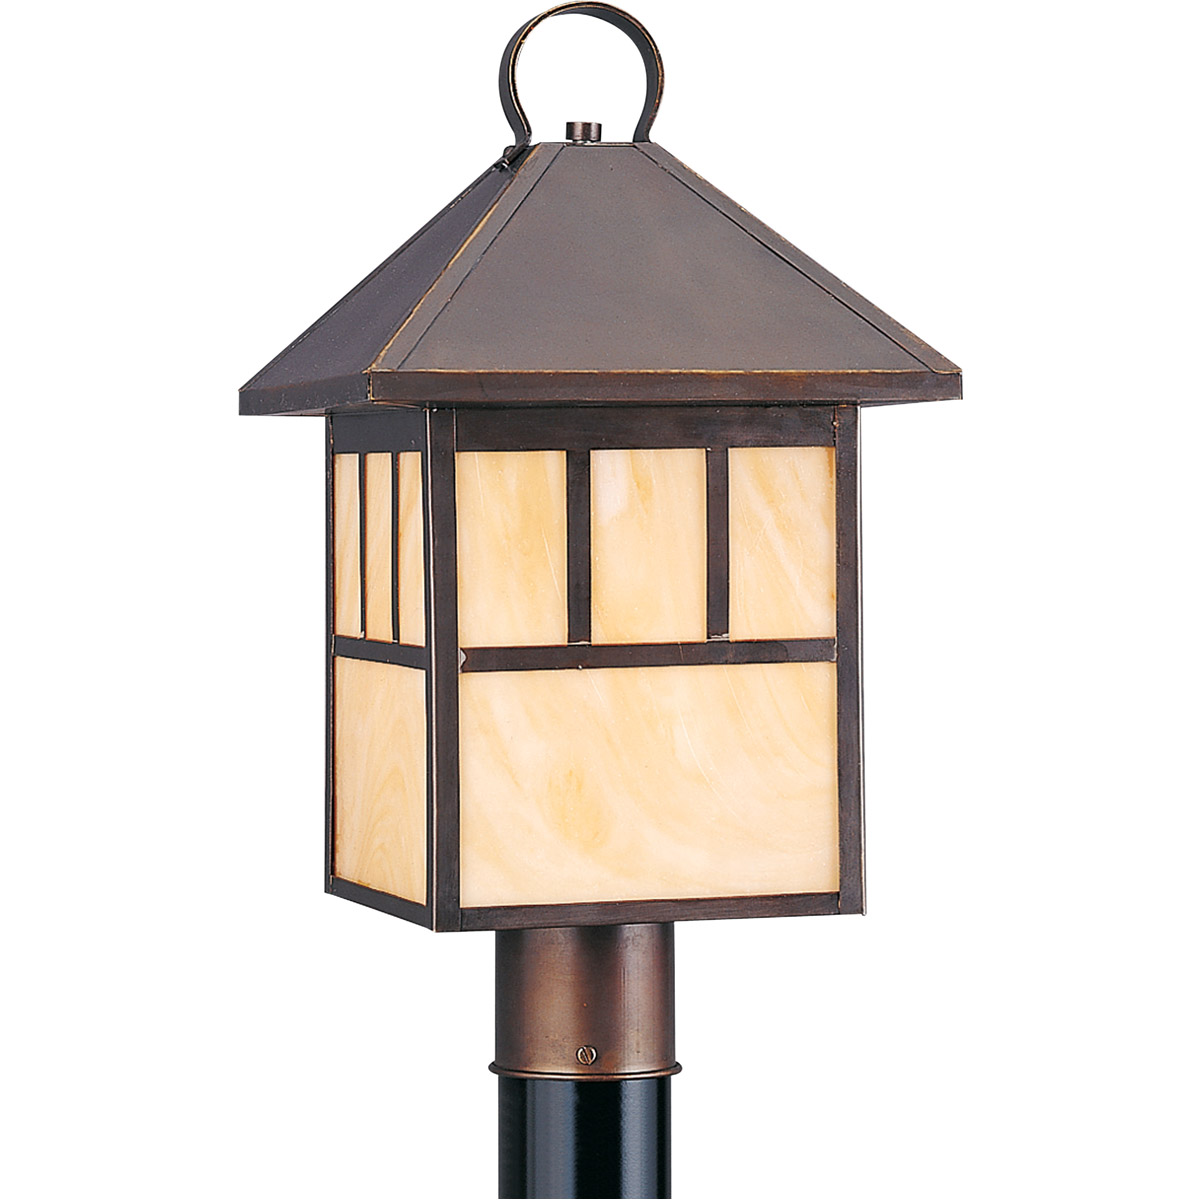 Sea Gull Lighting Prairie Statement 1 Light Outdoor Post Lantern in Antique Bronze 8207-71 photo